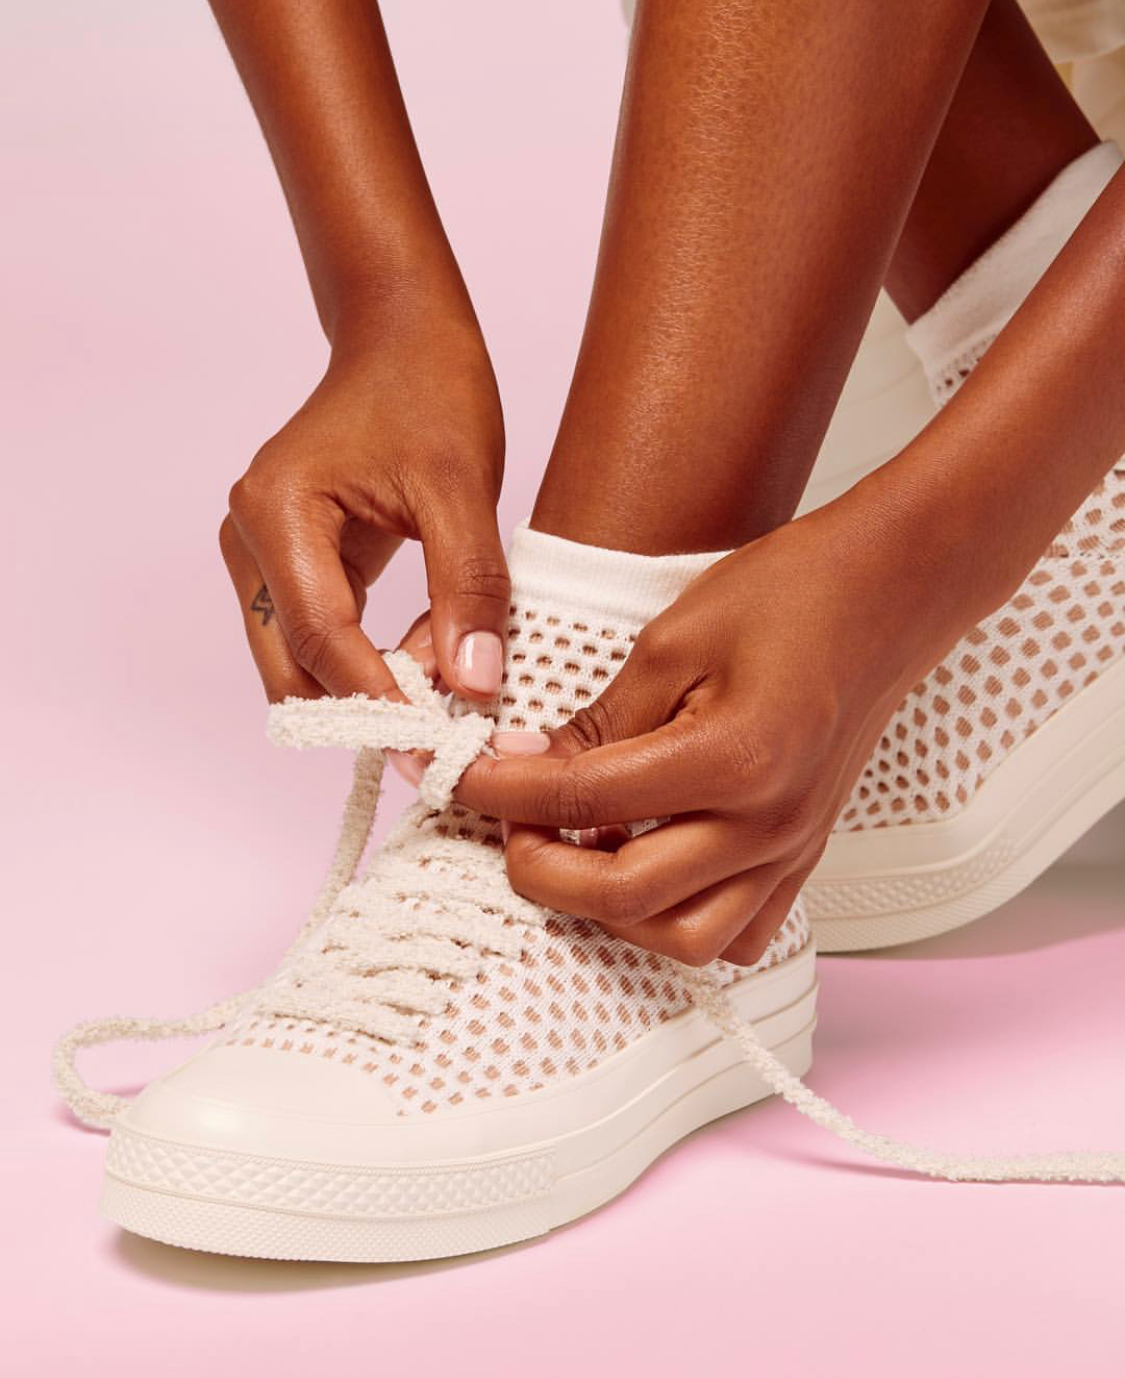 Cop or Can: WMNS Converse Chuck Knit